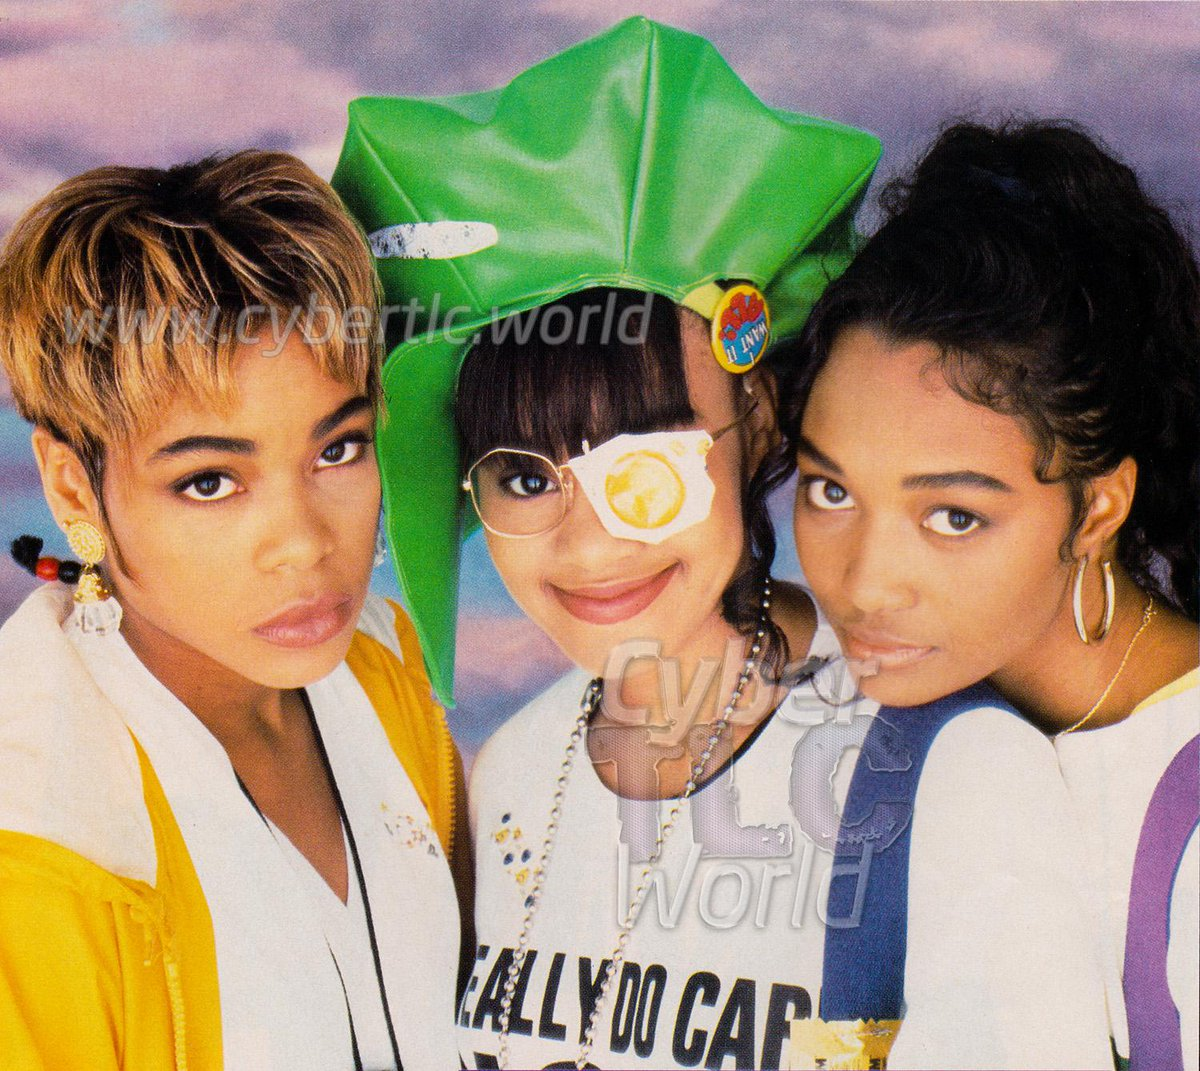 Cybertlc World On Twitter Check Out More Of This Super Rare Tlc Shoot Only At Cybertlc World Http T Co Zl1ntmxafg Http T Co Nvfigvzd45 Envía tus apodos divertidos y gamertags geniales y copia lo. super rare tlc shoot